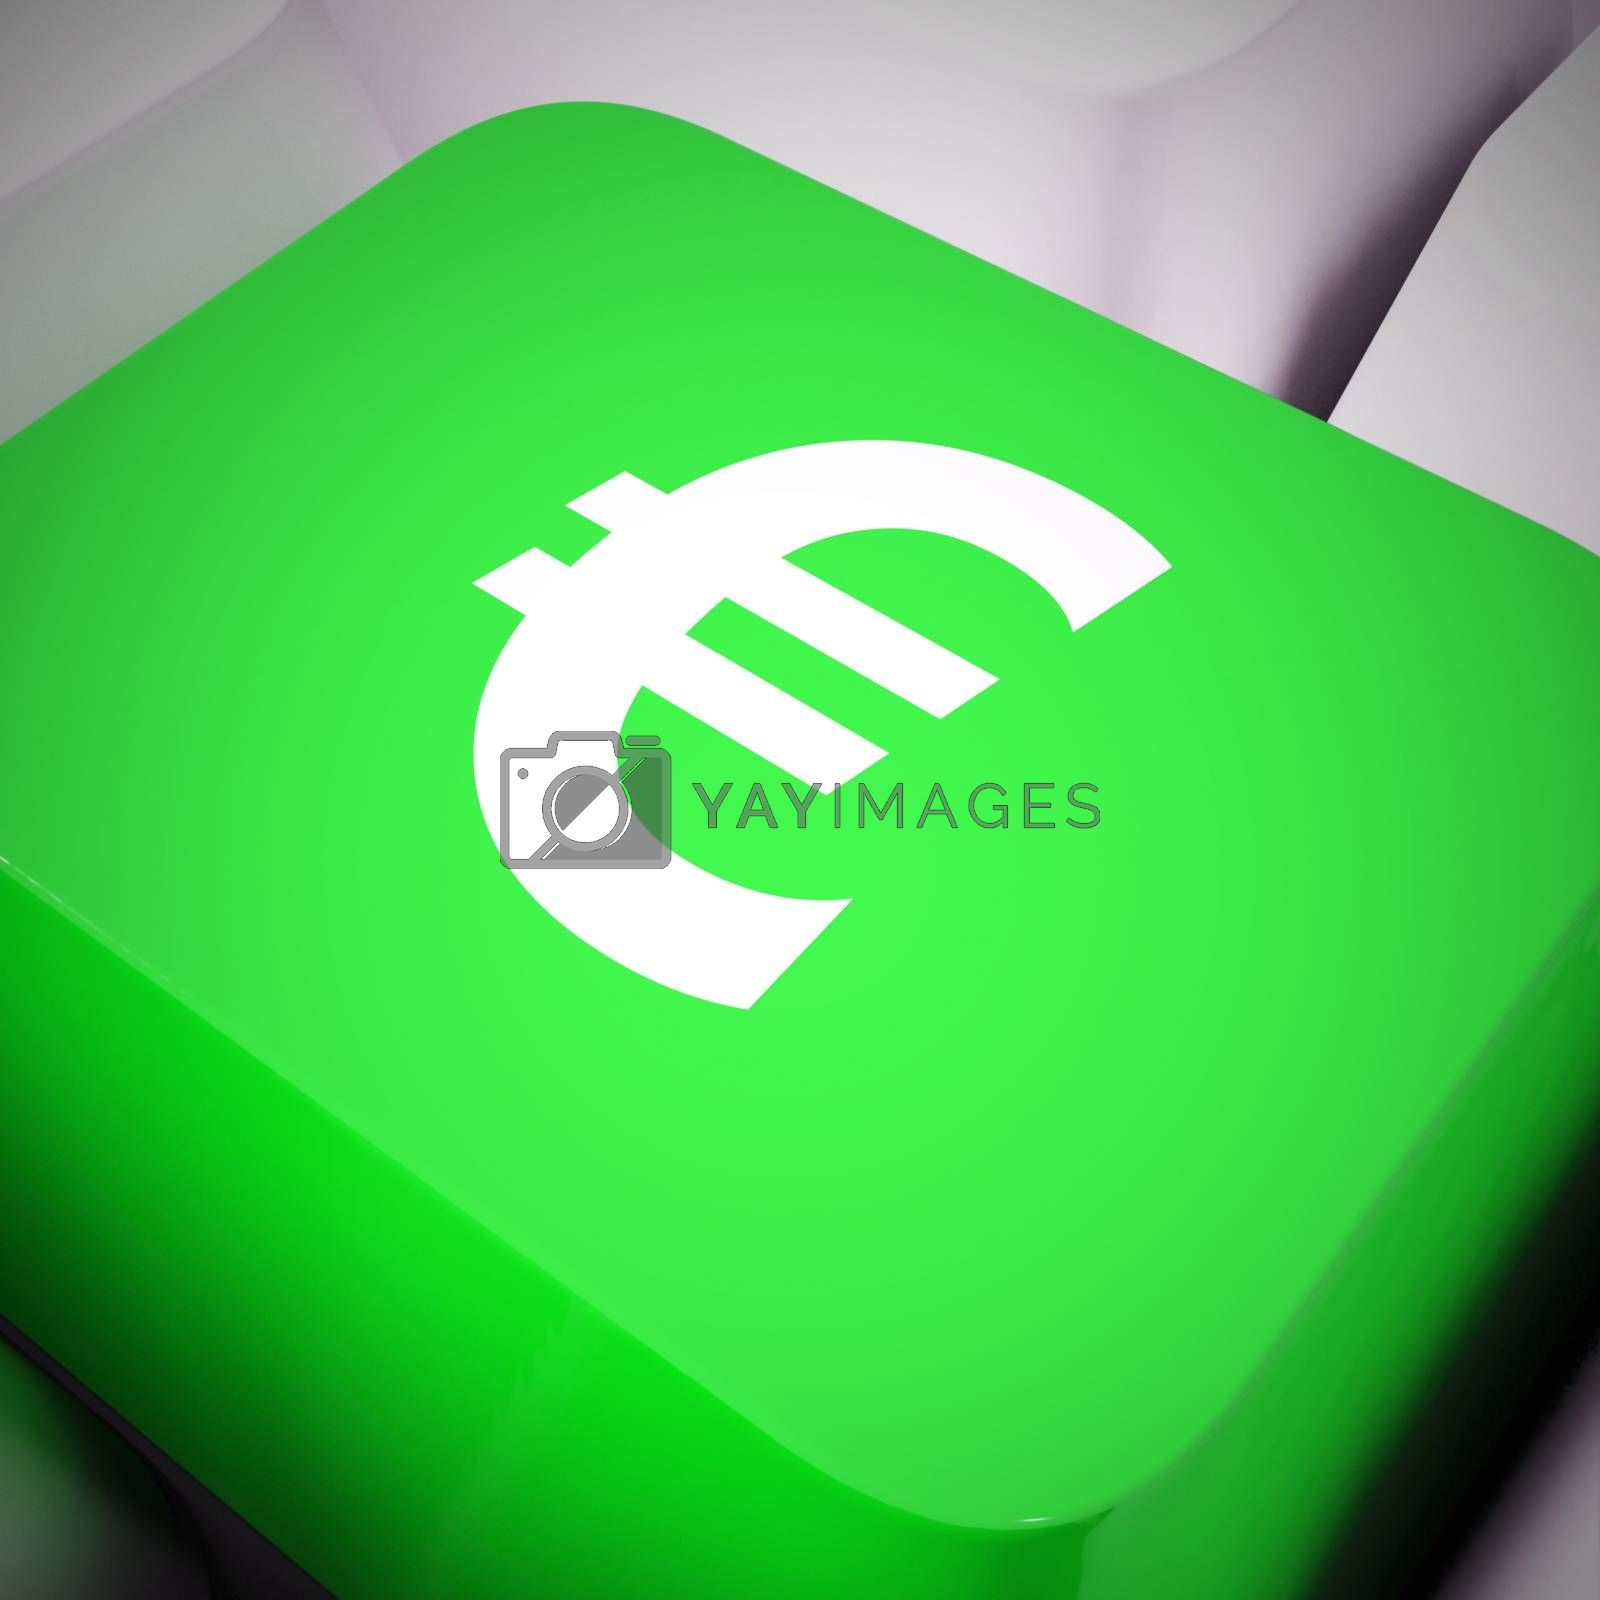 Royalty free image of Euro sign concept icon means lots of funds or savings - 3d illus by stuartmiles